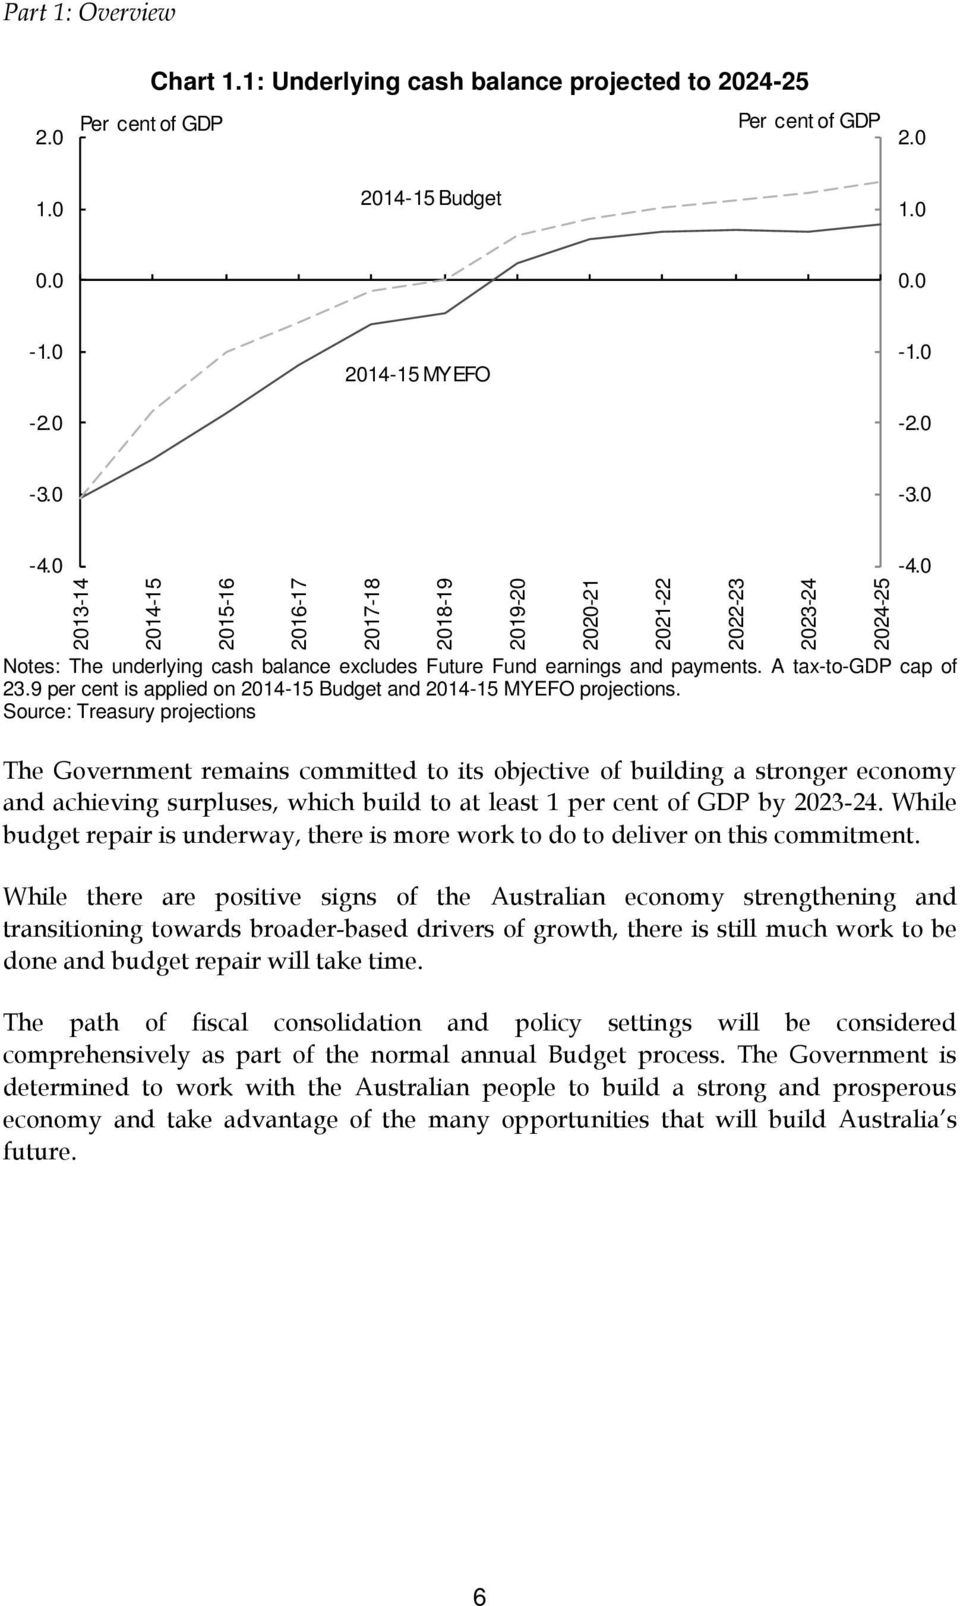 9 per cent is applied on 2014-15 Budget and 2014-15 MYEFO projections.